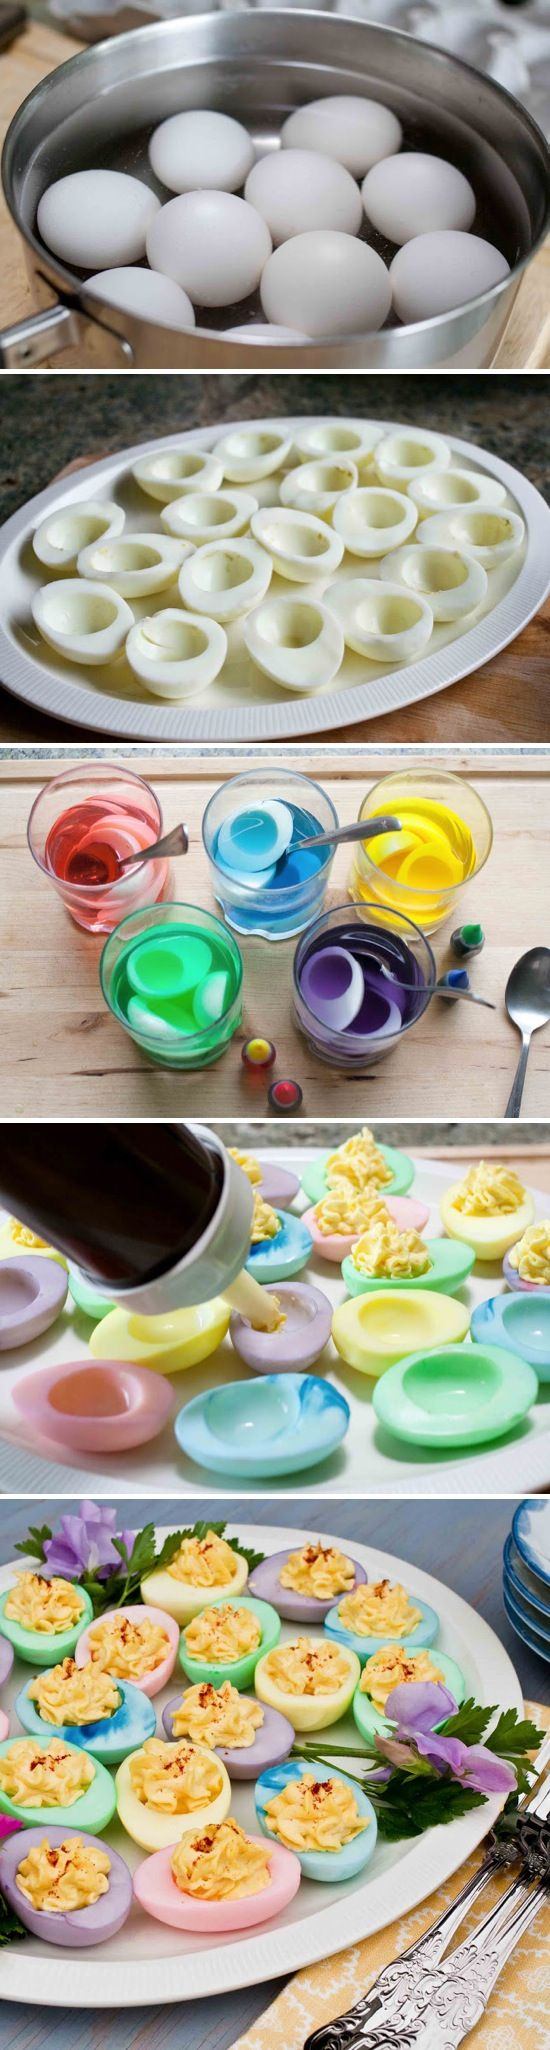 Colorful Deviled Eggs - a healthy treat for Easter